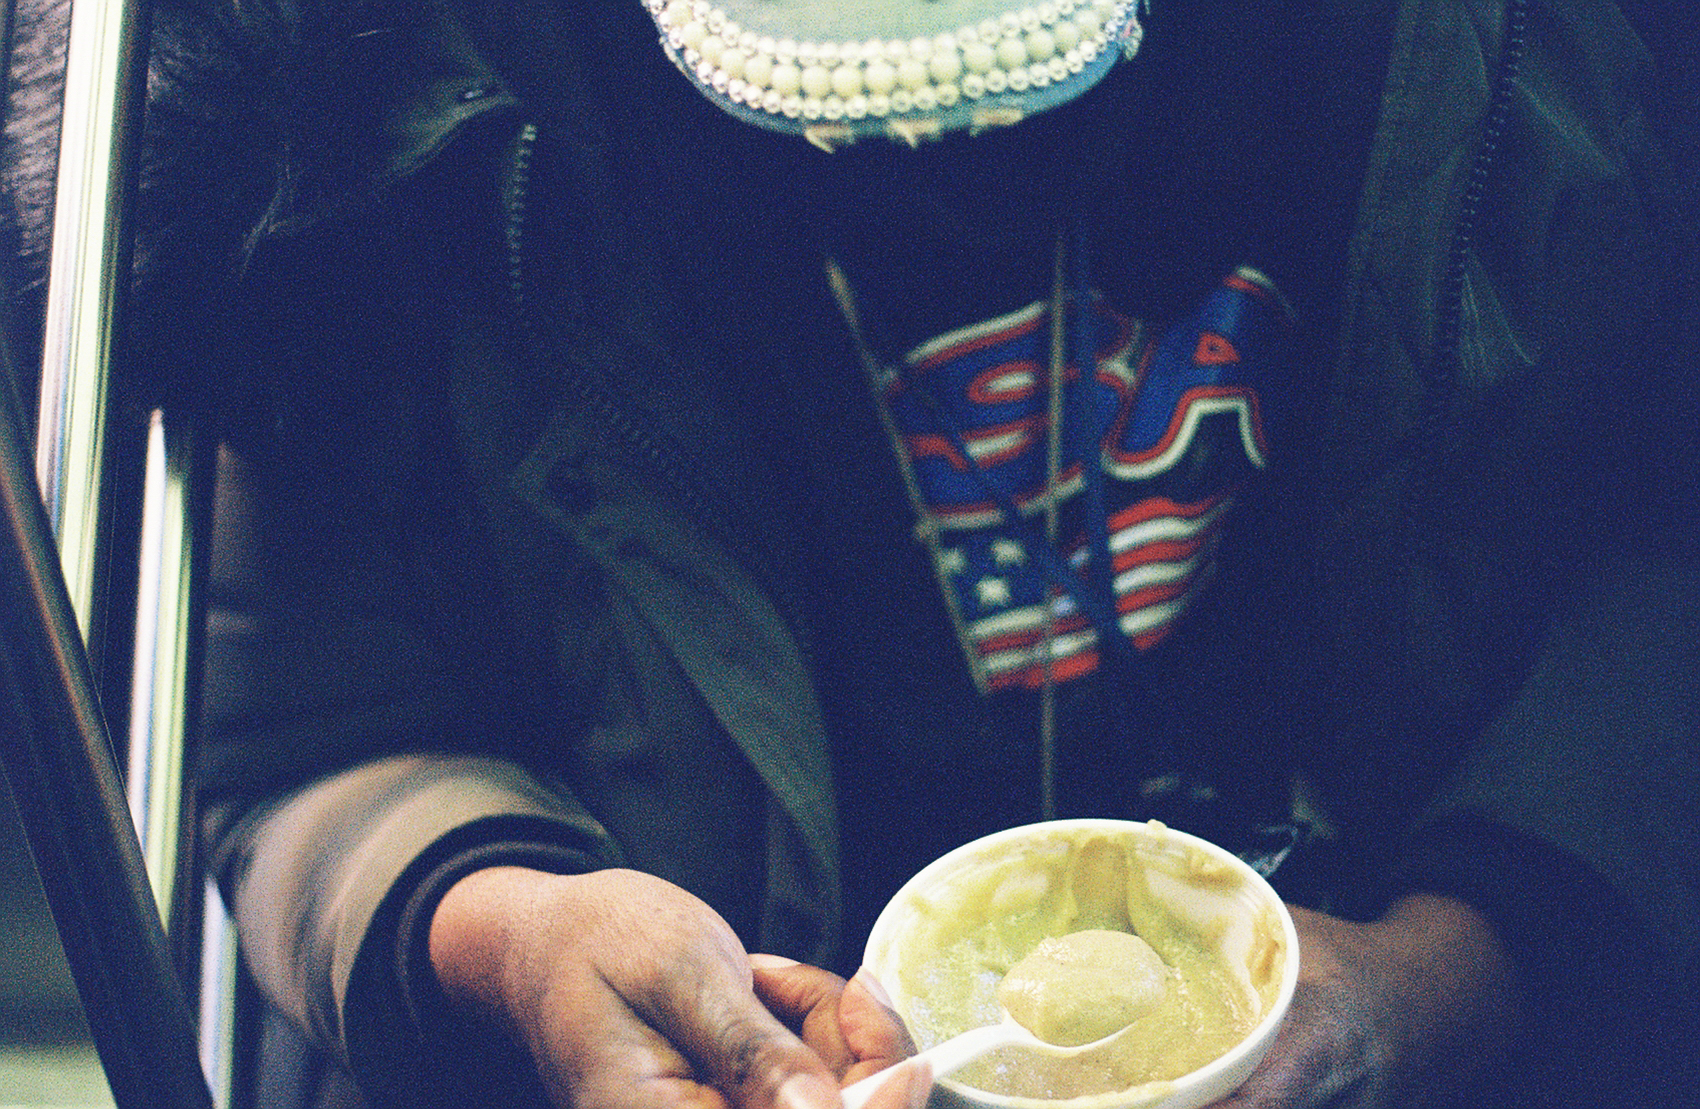 Man eats on the Subway_Film Photography_NYC_Joe Curry Photograph